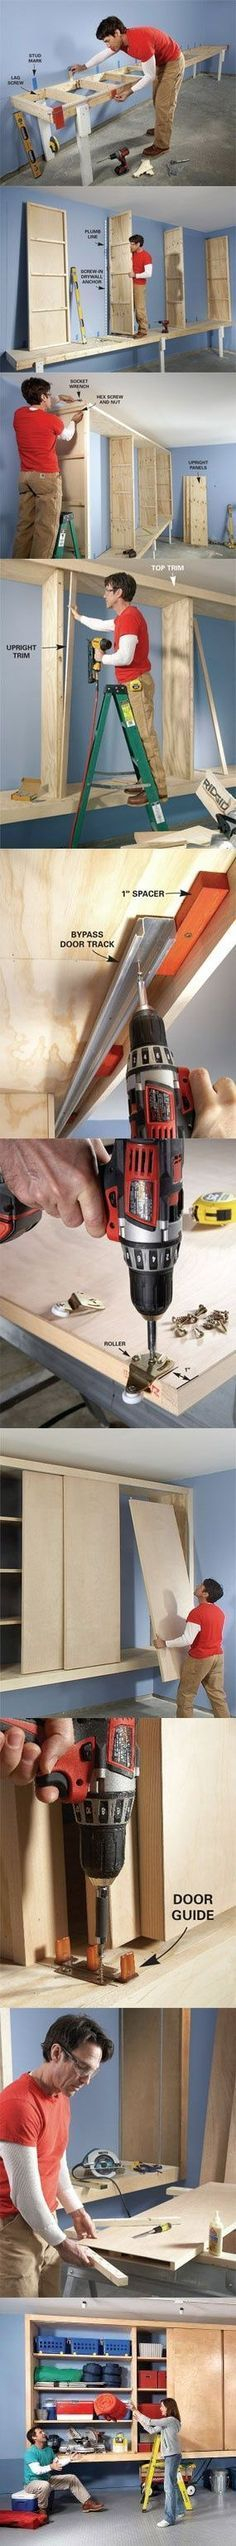 Giant DIY Garage Cabinet Plans: Build your own shelving and storage area for the garage.